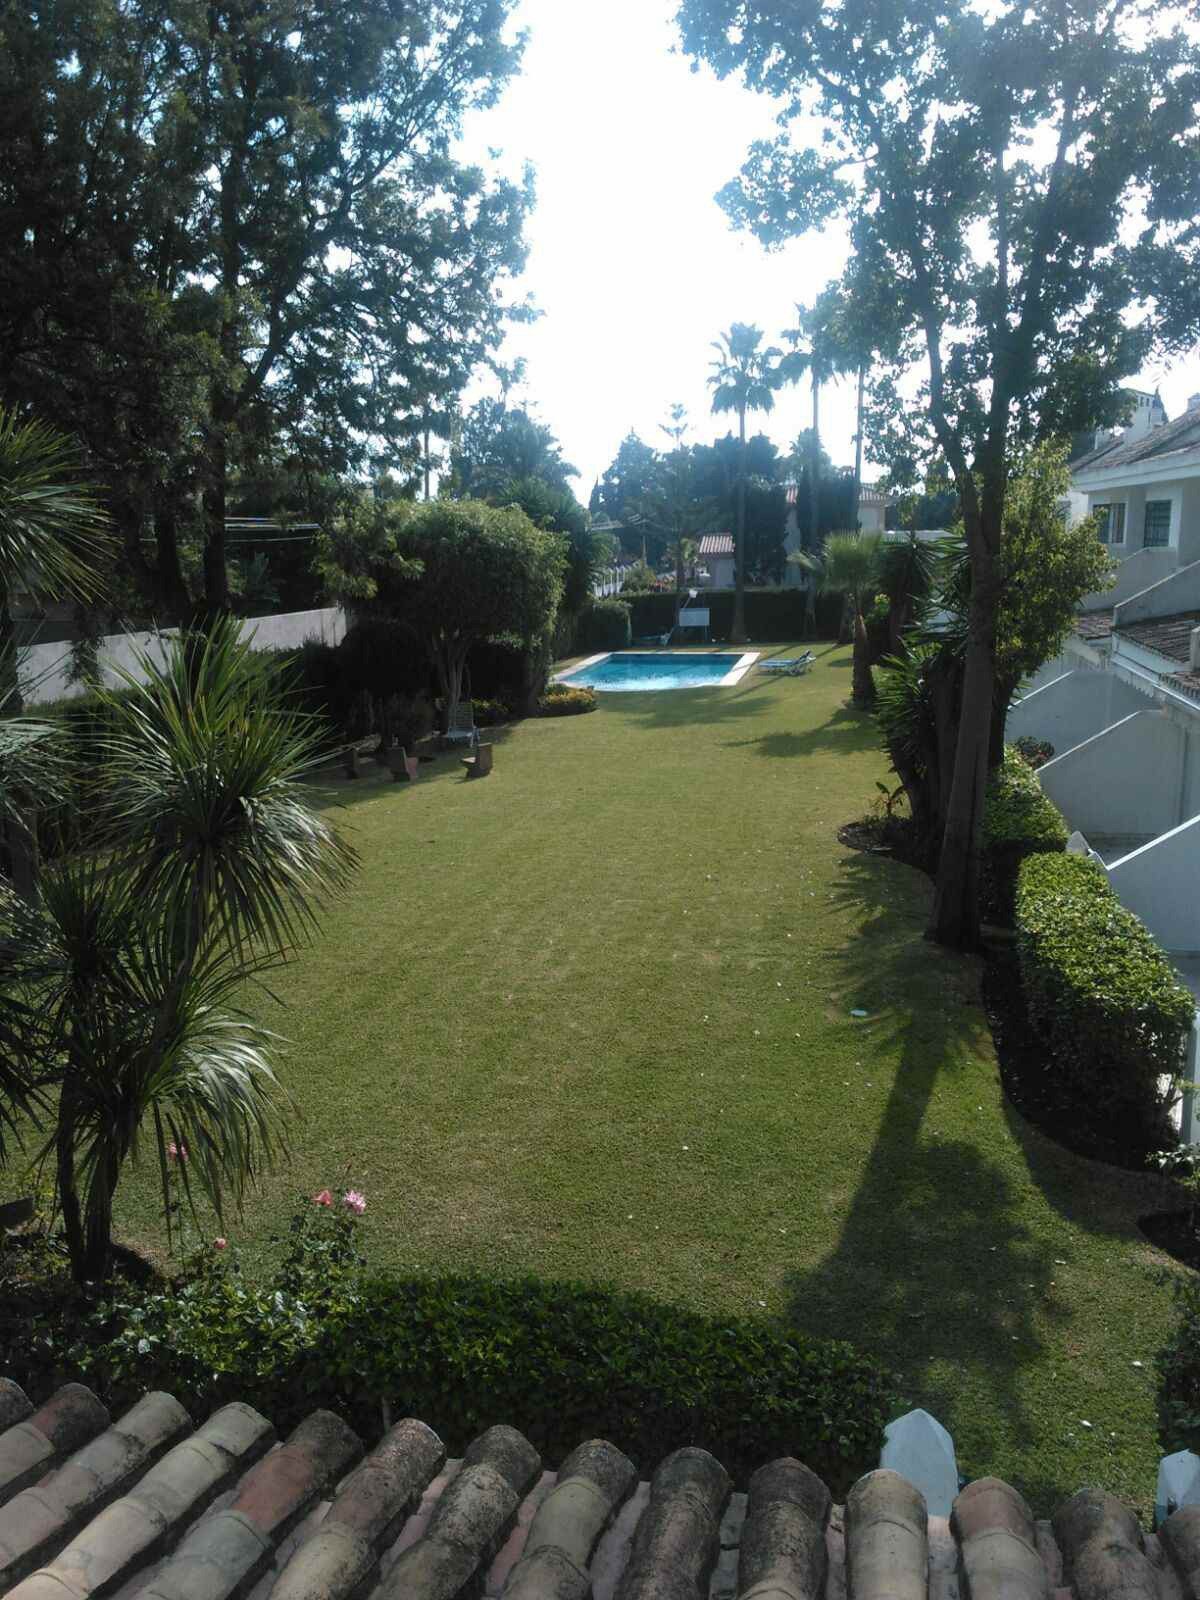 Renovated townhouse, well located, plenty of sunlight, 3 beds, new appliances, independent laundry r,Spain